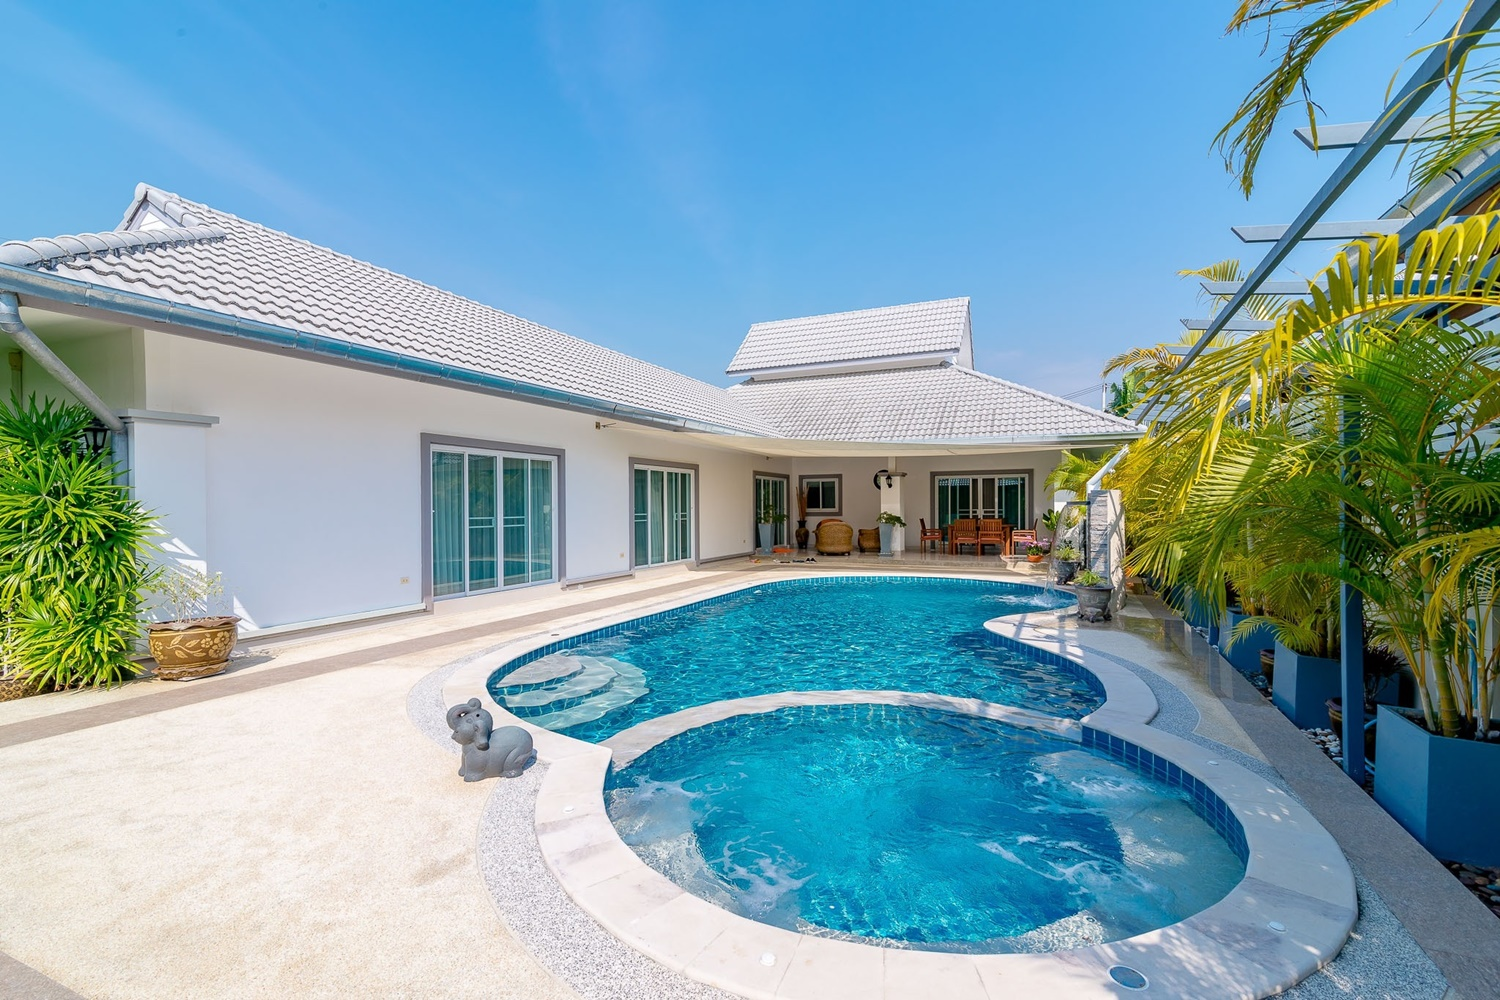 Lovely Villa HuaHin For Sale